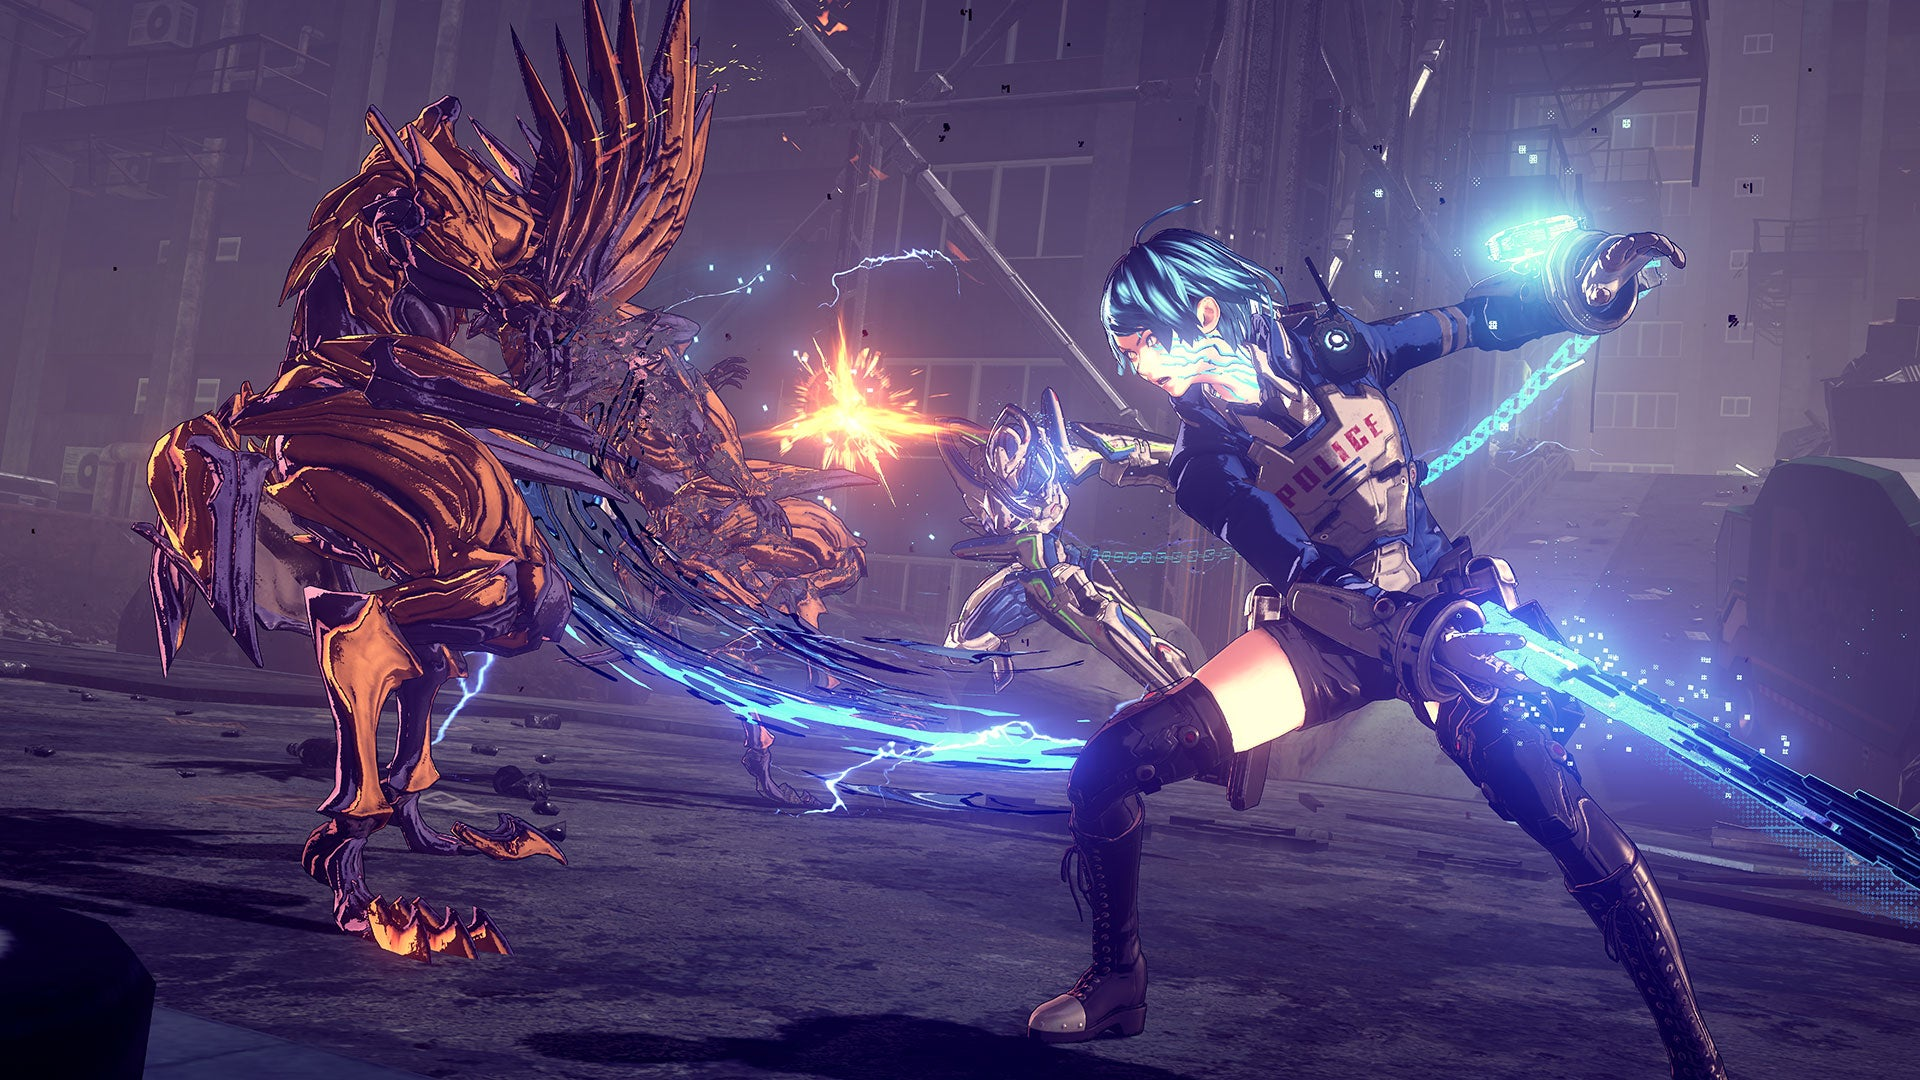 Astral Chain Director Says It Actually Can Be Two-Player, But It Makes The Game Harder